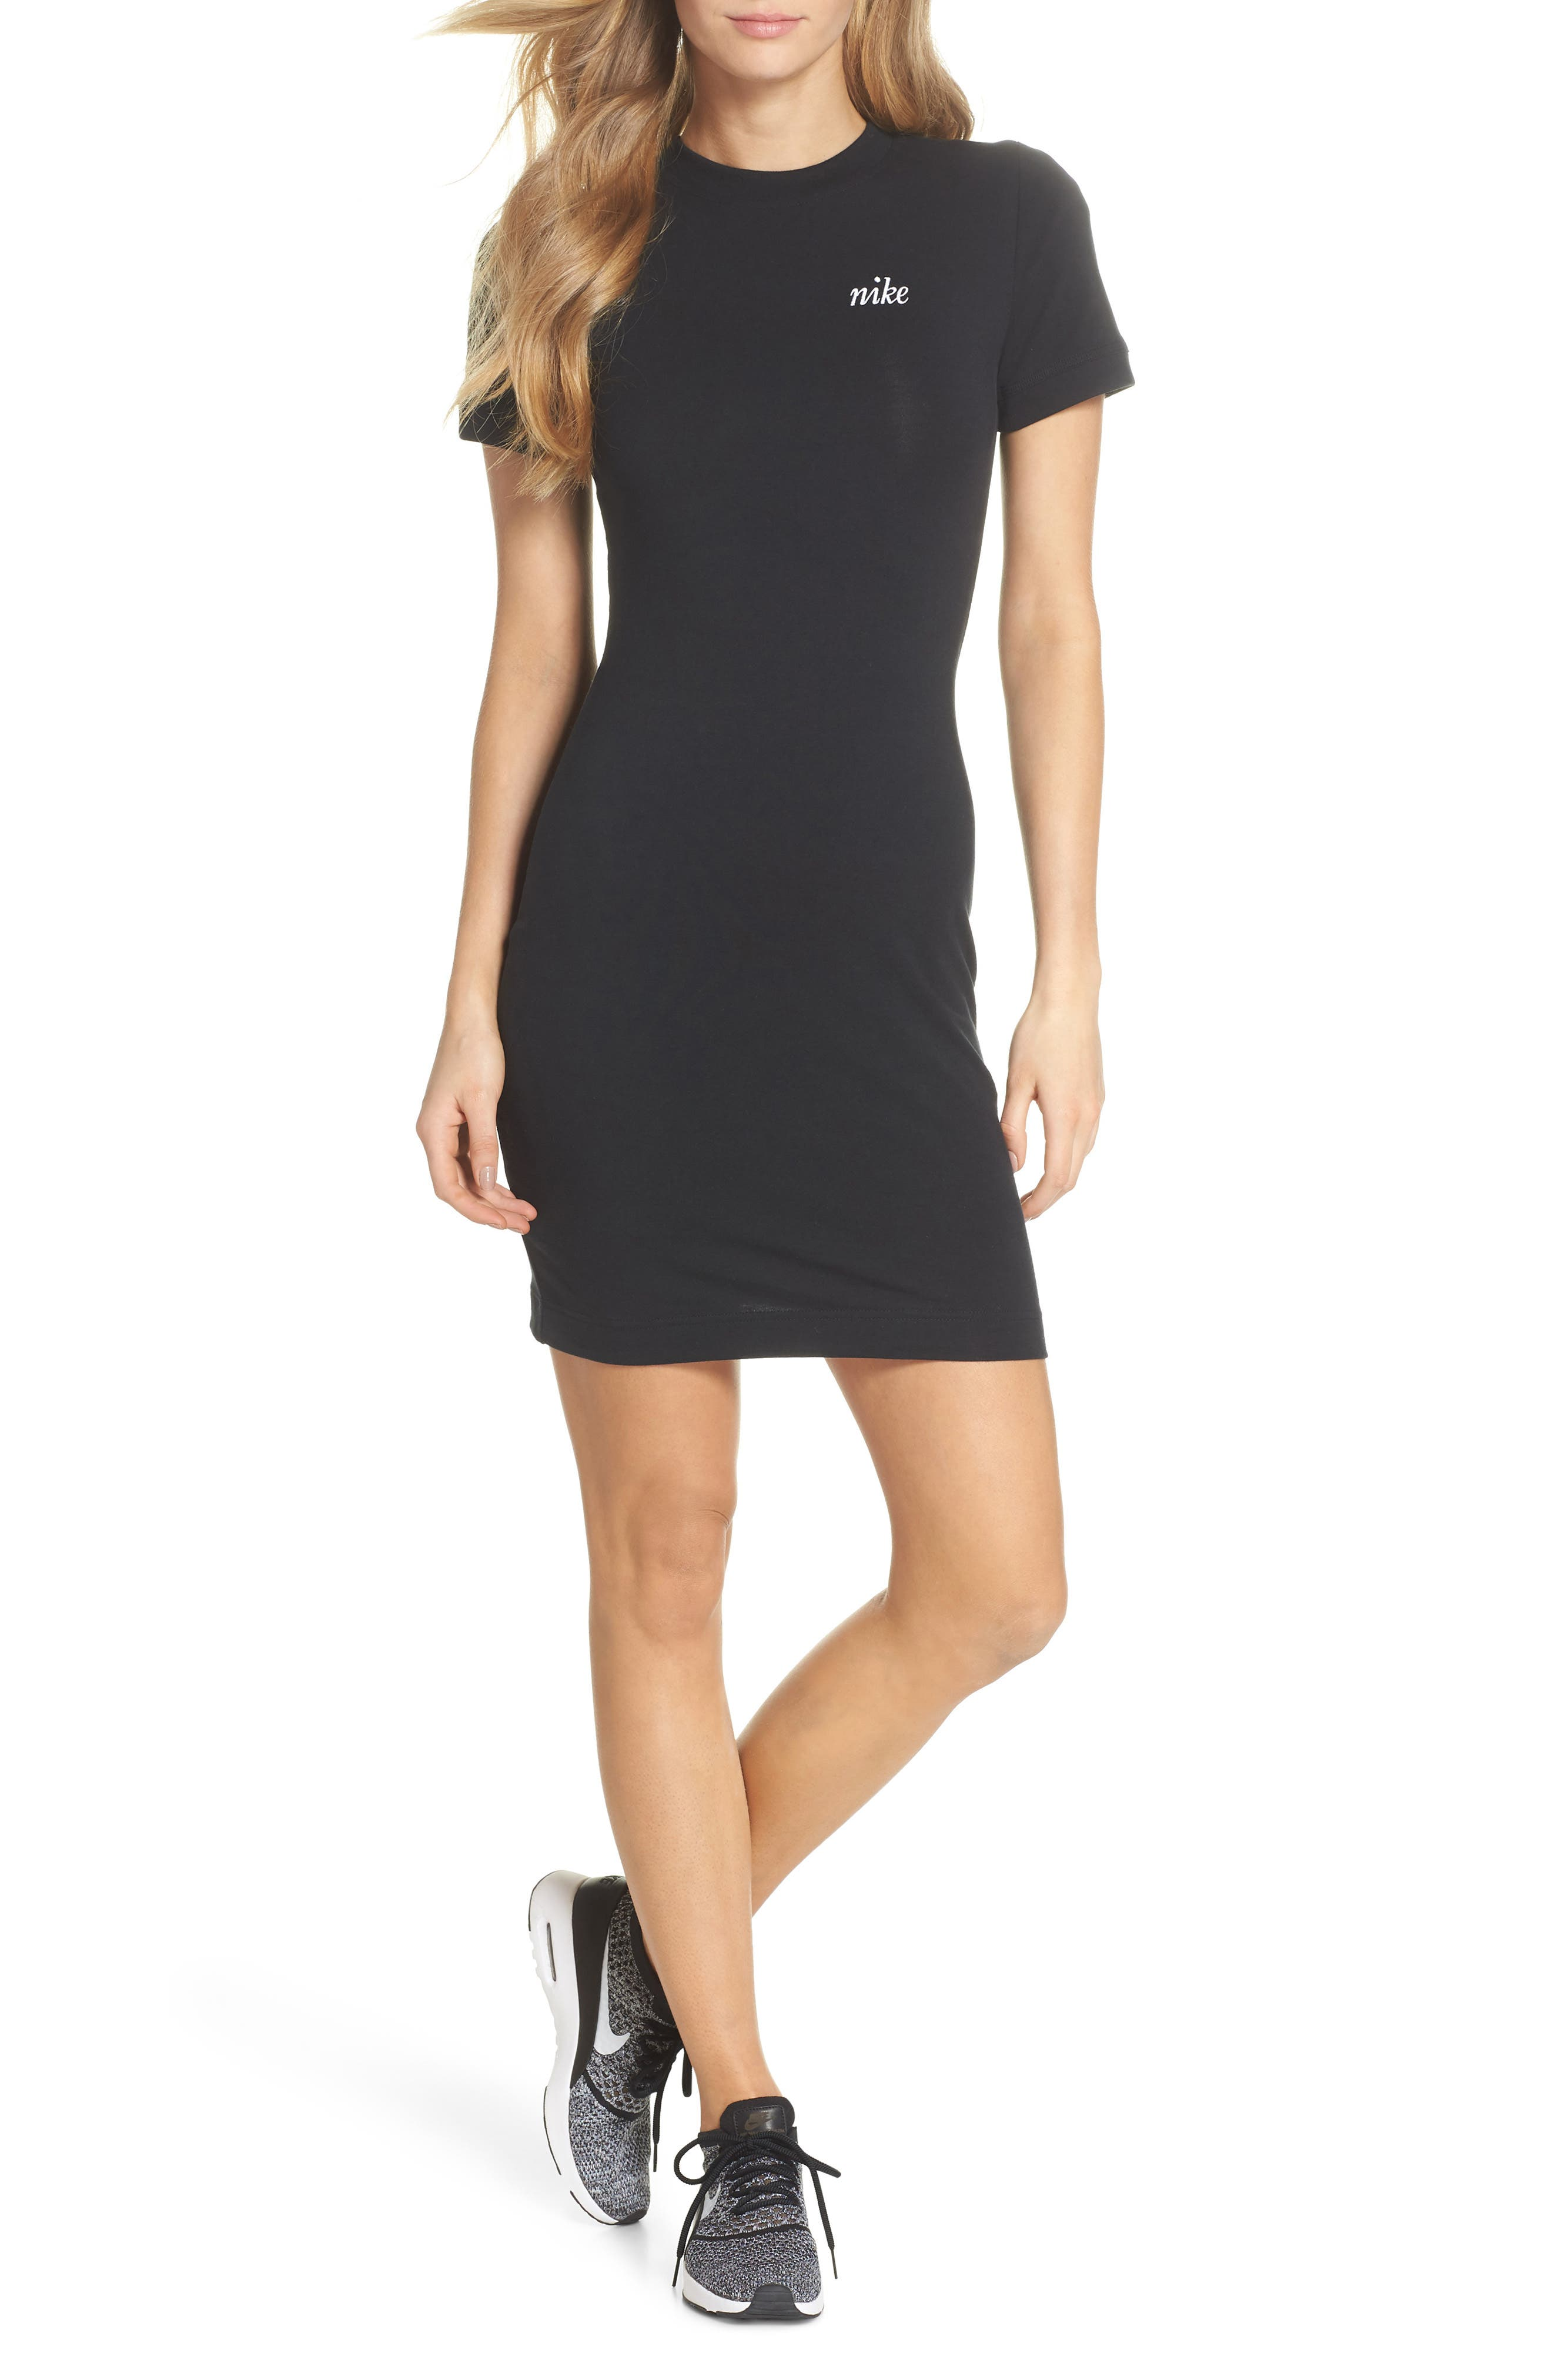 Sportswear T-Shirt Dress,                             Main thumbnail 1, color,                             010